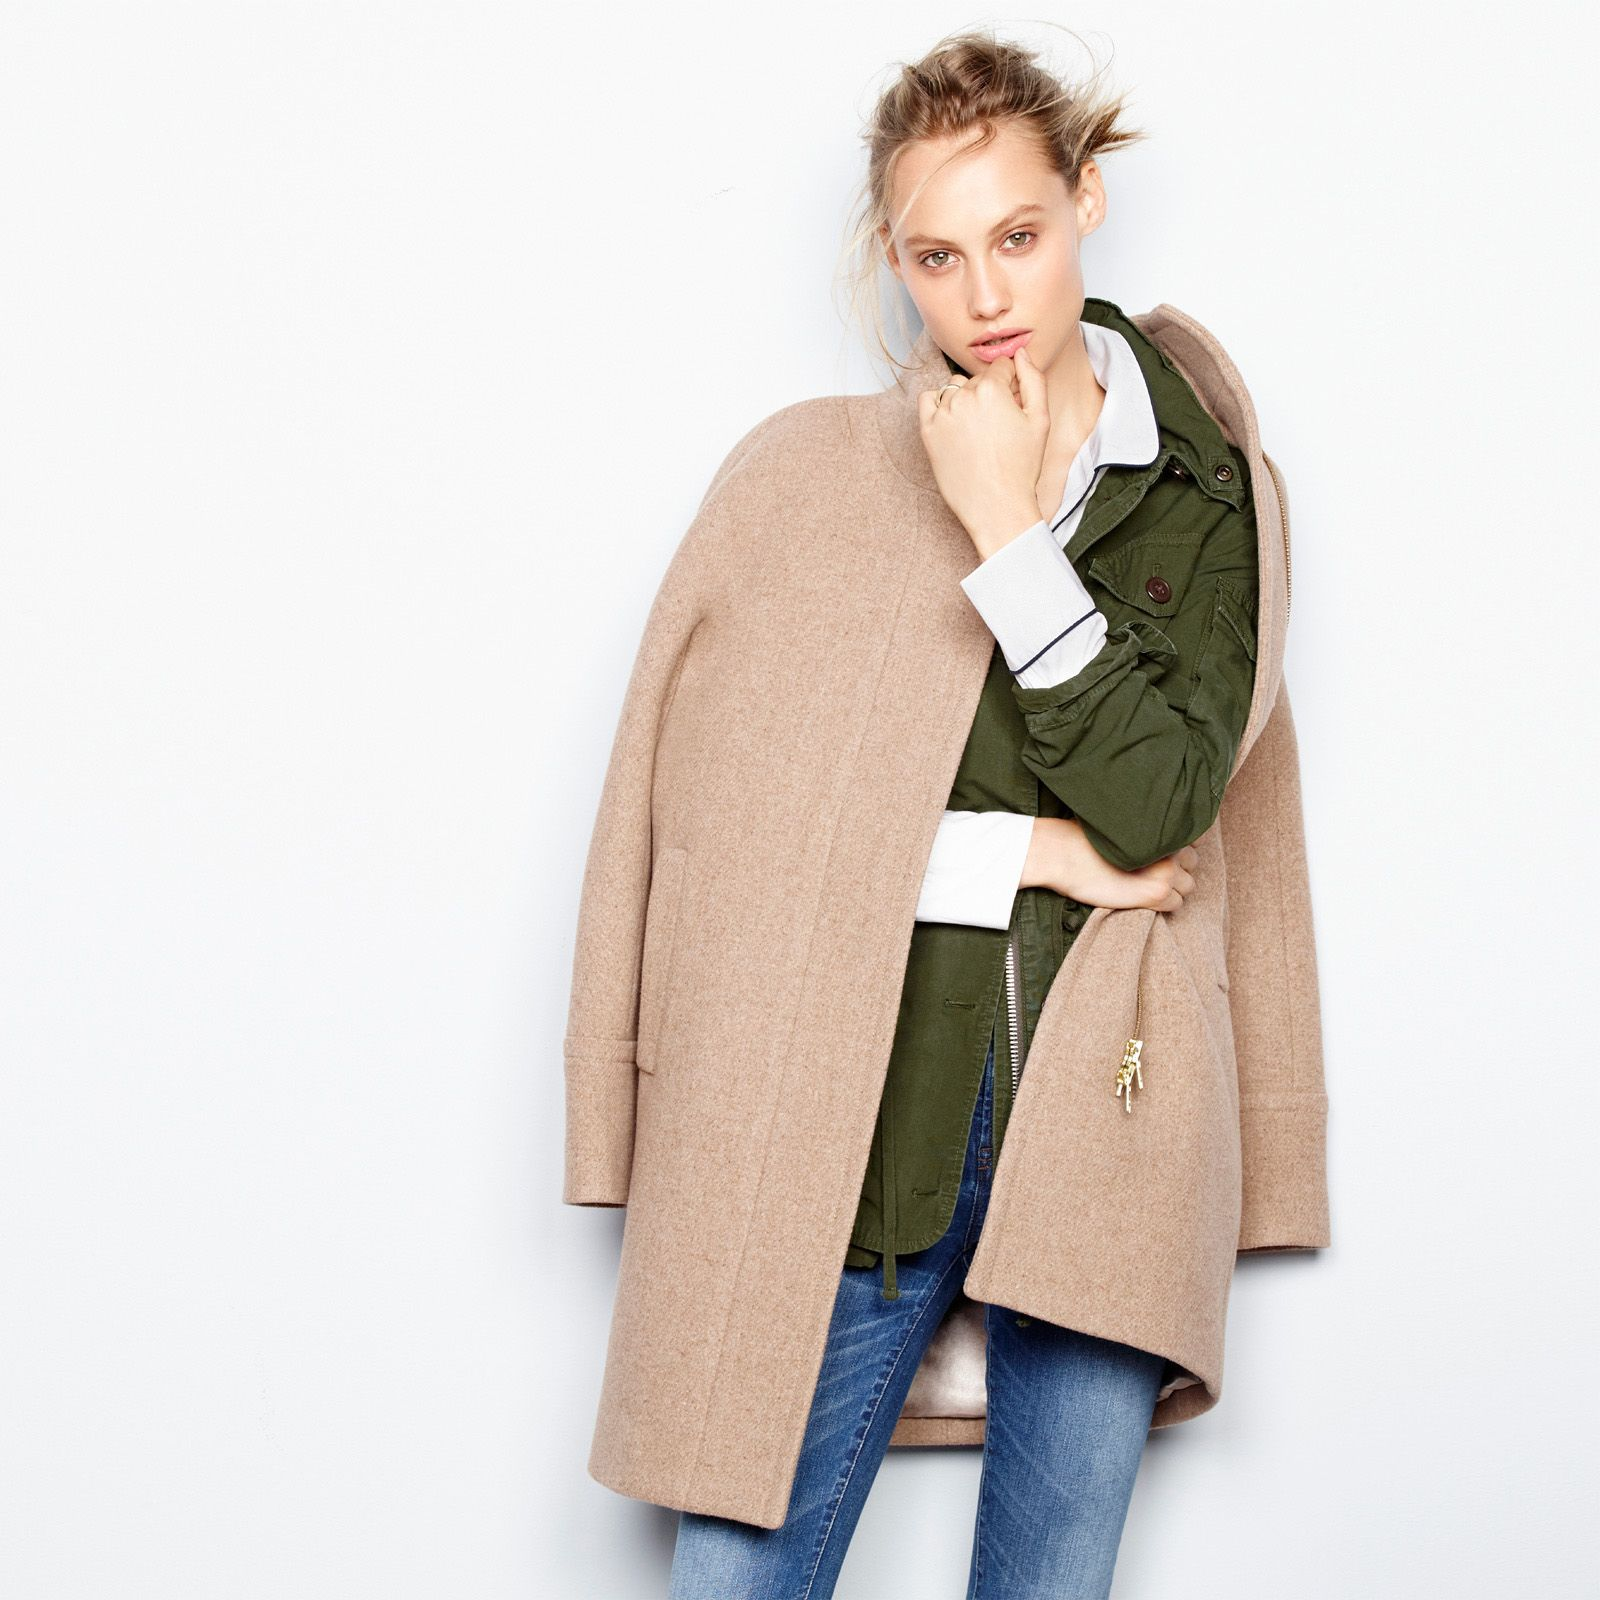 J Loved The Field On The Wall Look ȁ�: J.Crew Looks We Love: Women's Stadium-cloth Cocoon Coat